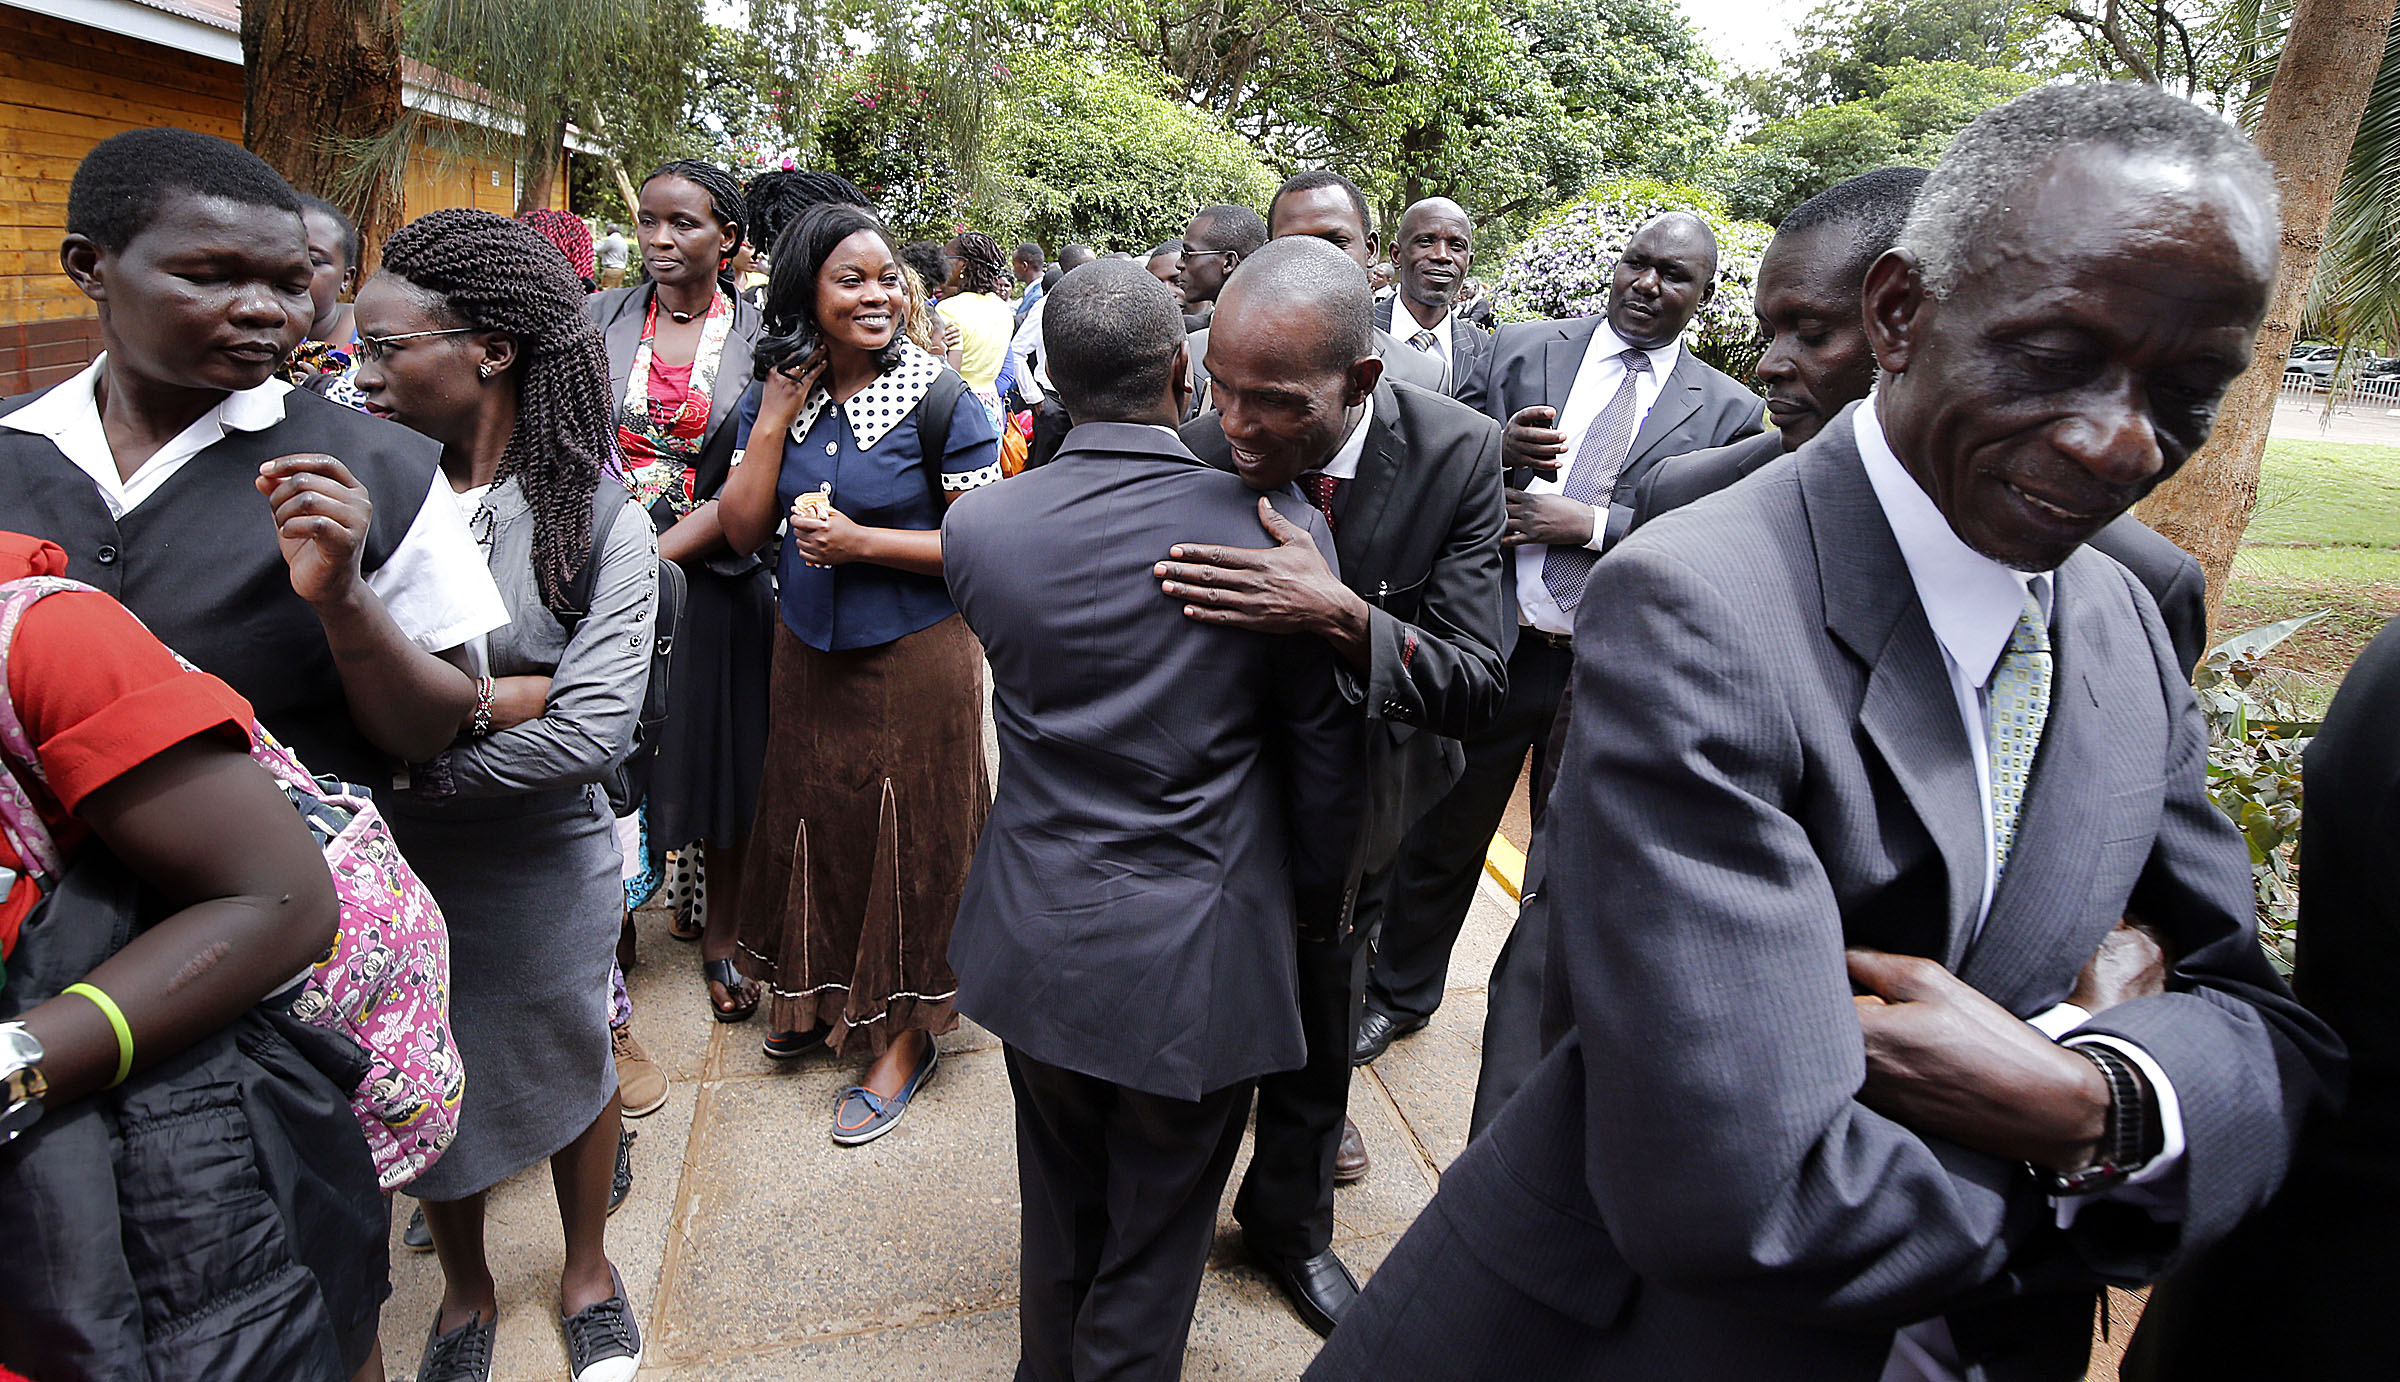 People line up to attend a special devotional with President Russell M. Nelson of The Church of Jesus Christ of Latter-day Saints in Nairobi, Kenya, on Monday, April 16, 2018. At center, Newton Senyange and Moses Mbiro hug.